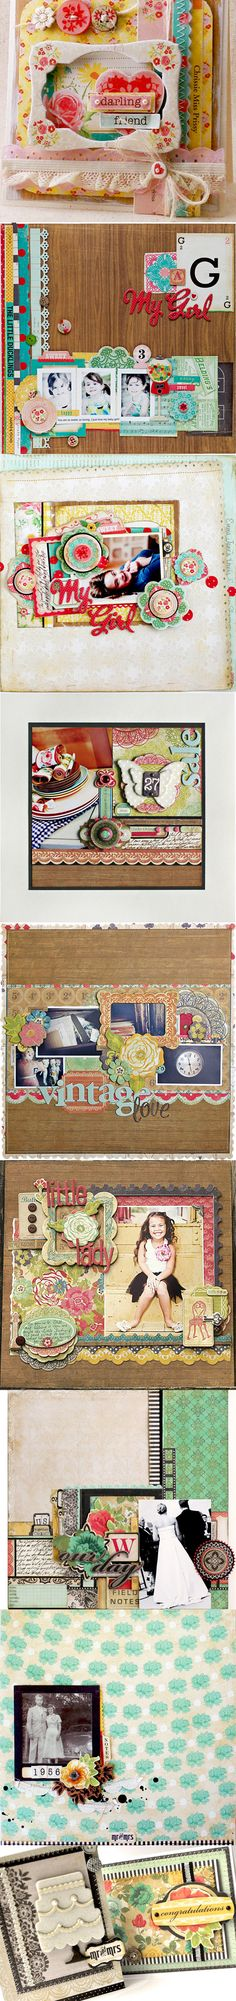 """Today's Peachy Cheap deal is a Crate Paper Collections Mega Kit. This deal has 48 double sided 12""""x 12"""" papers, 3 12'x 12"""" sheets of die cuts, 3 sheets of border stickers and 3 sheets of journaling stickers. The 3 lines included are Emma's Shoppe, Restoration and Portrait. 61% OFF at www.peachycheap.com!"""